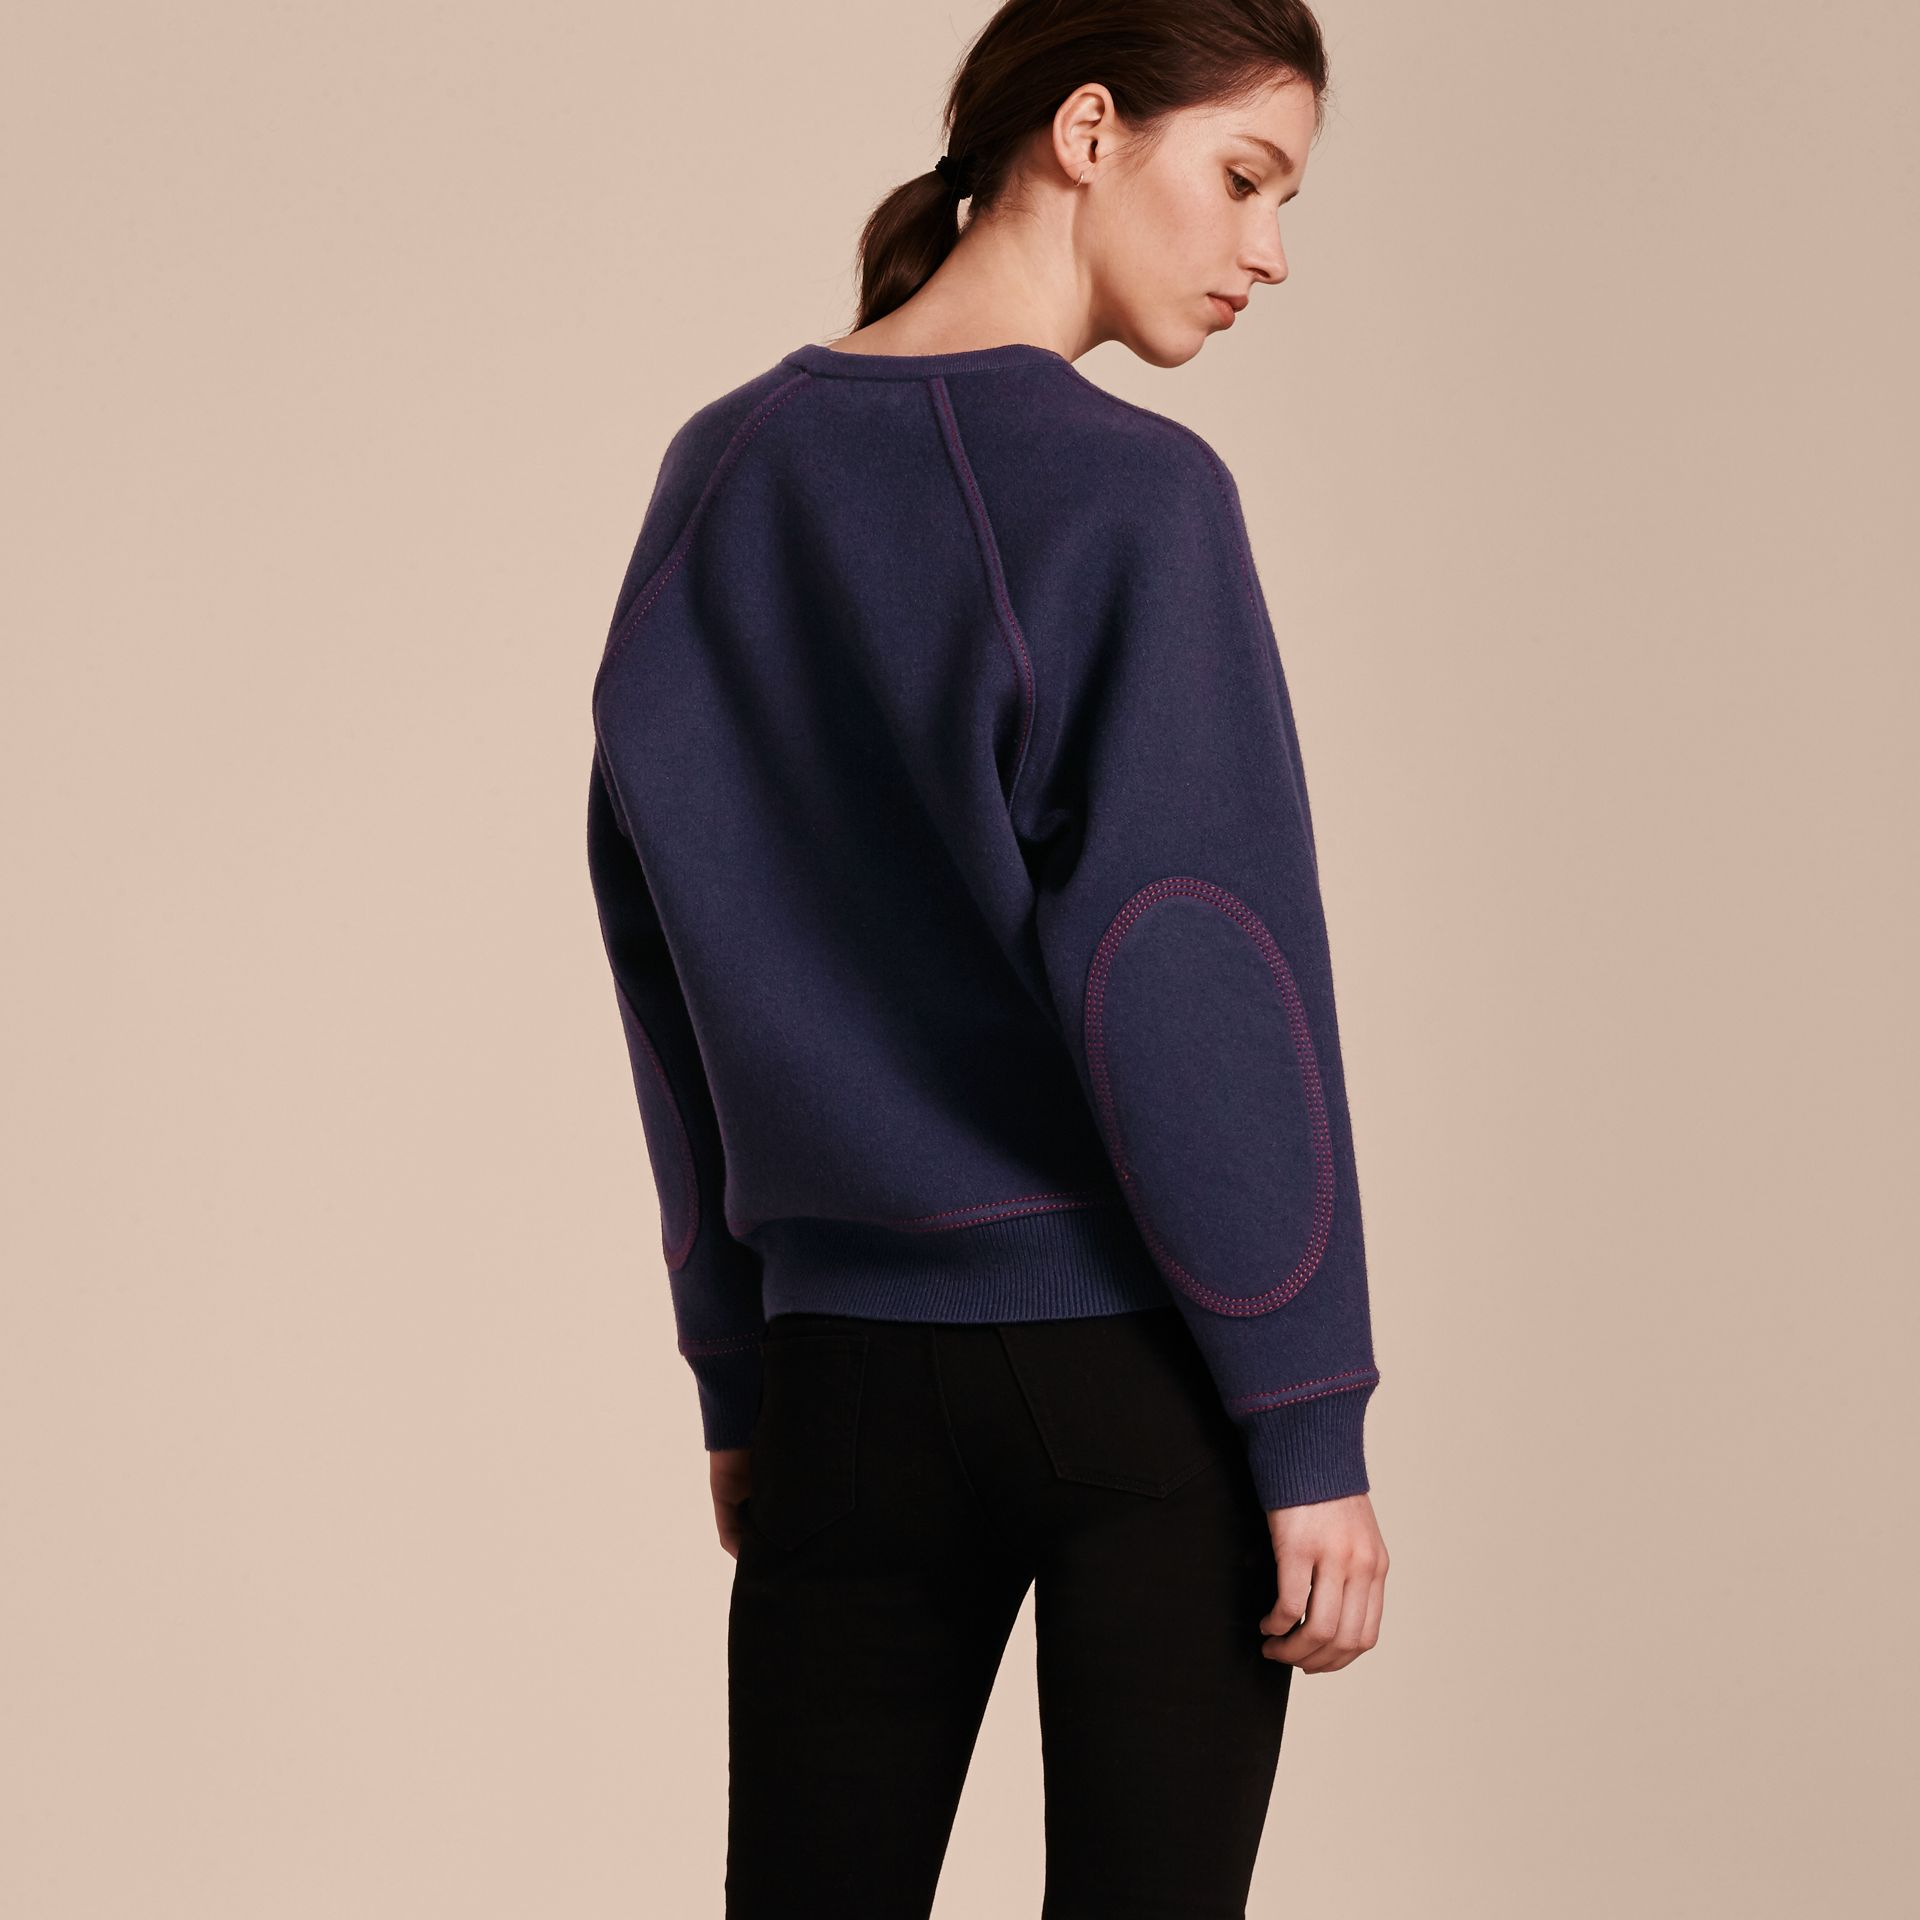 Topstitch Detail Wool Cashmere Blend Sweater Navy - gallery image 3